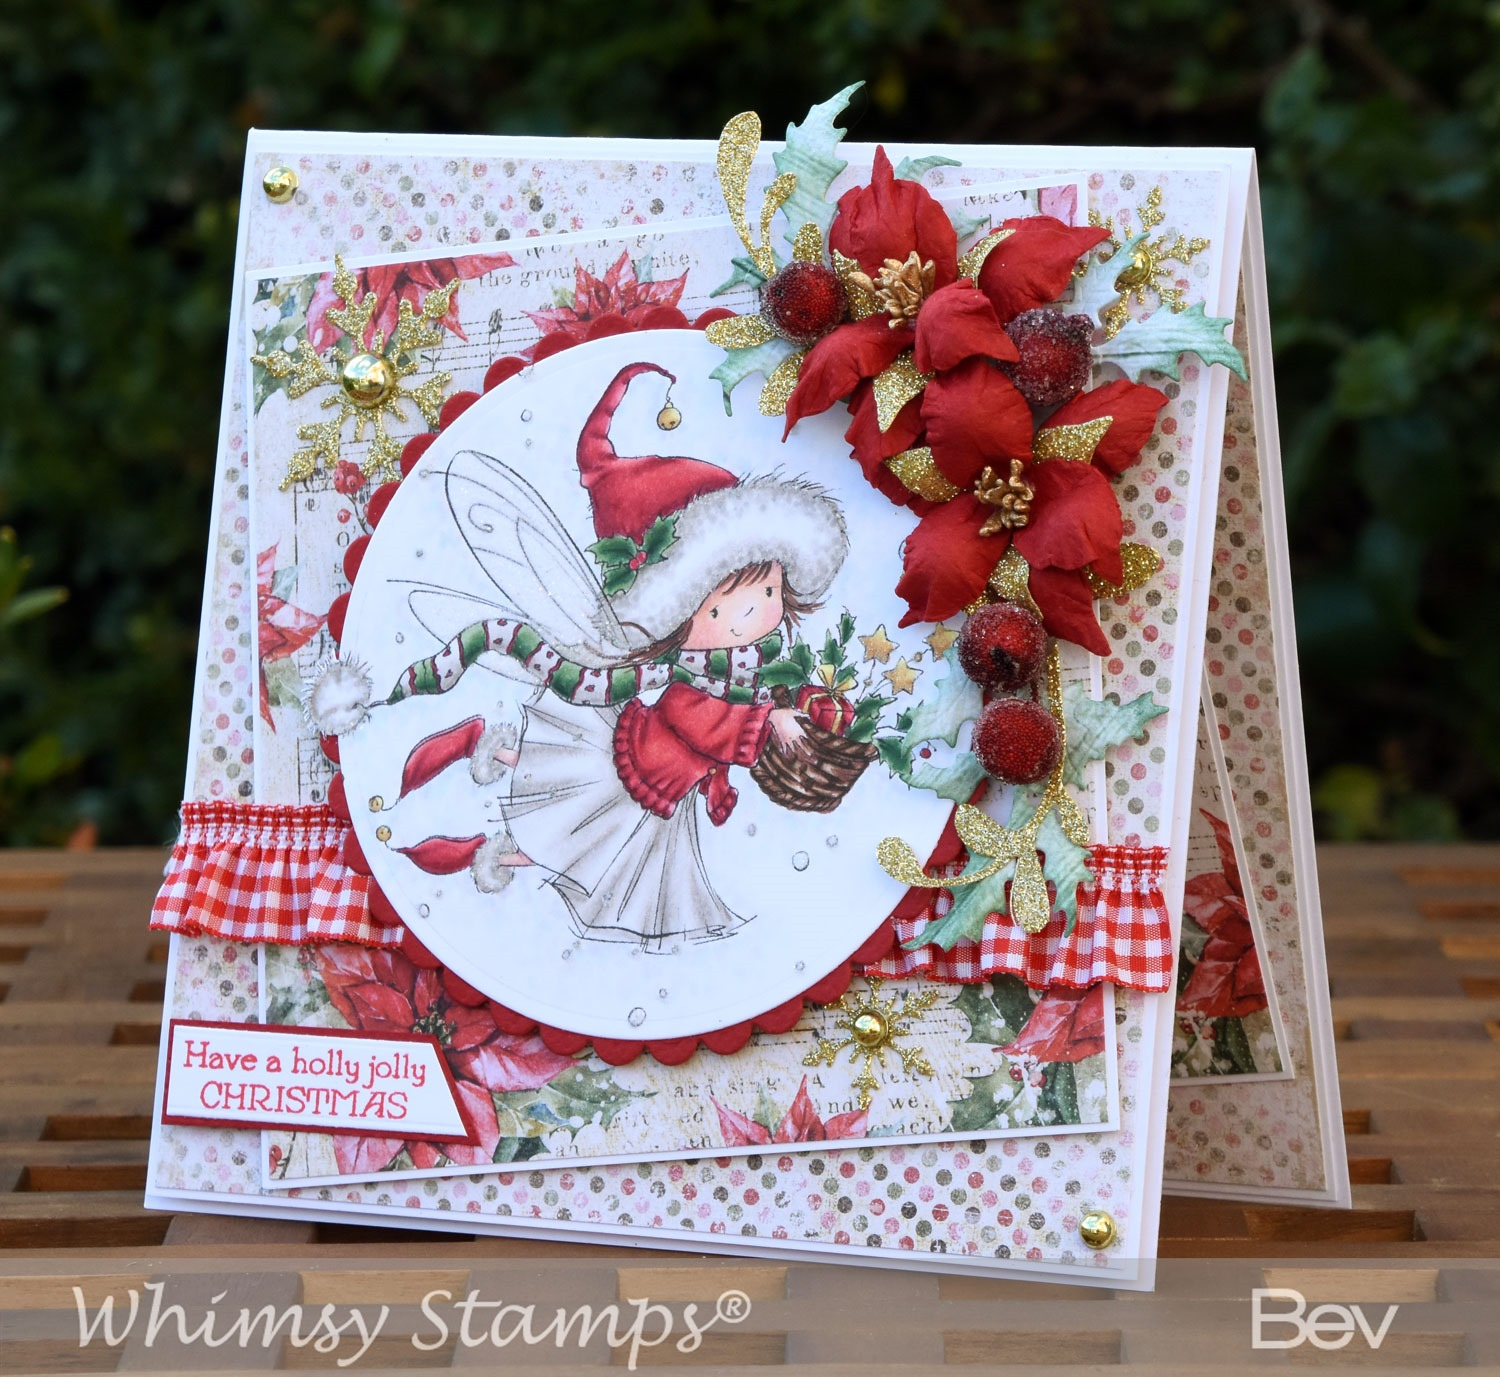 [bev-rochester-whimsy-stamps-merry-wishes4%5B2%5D]